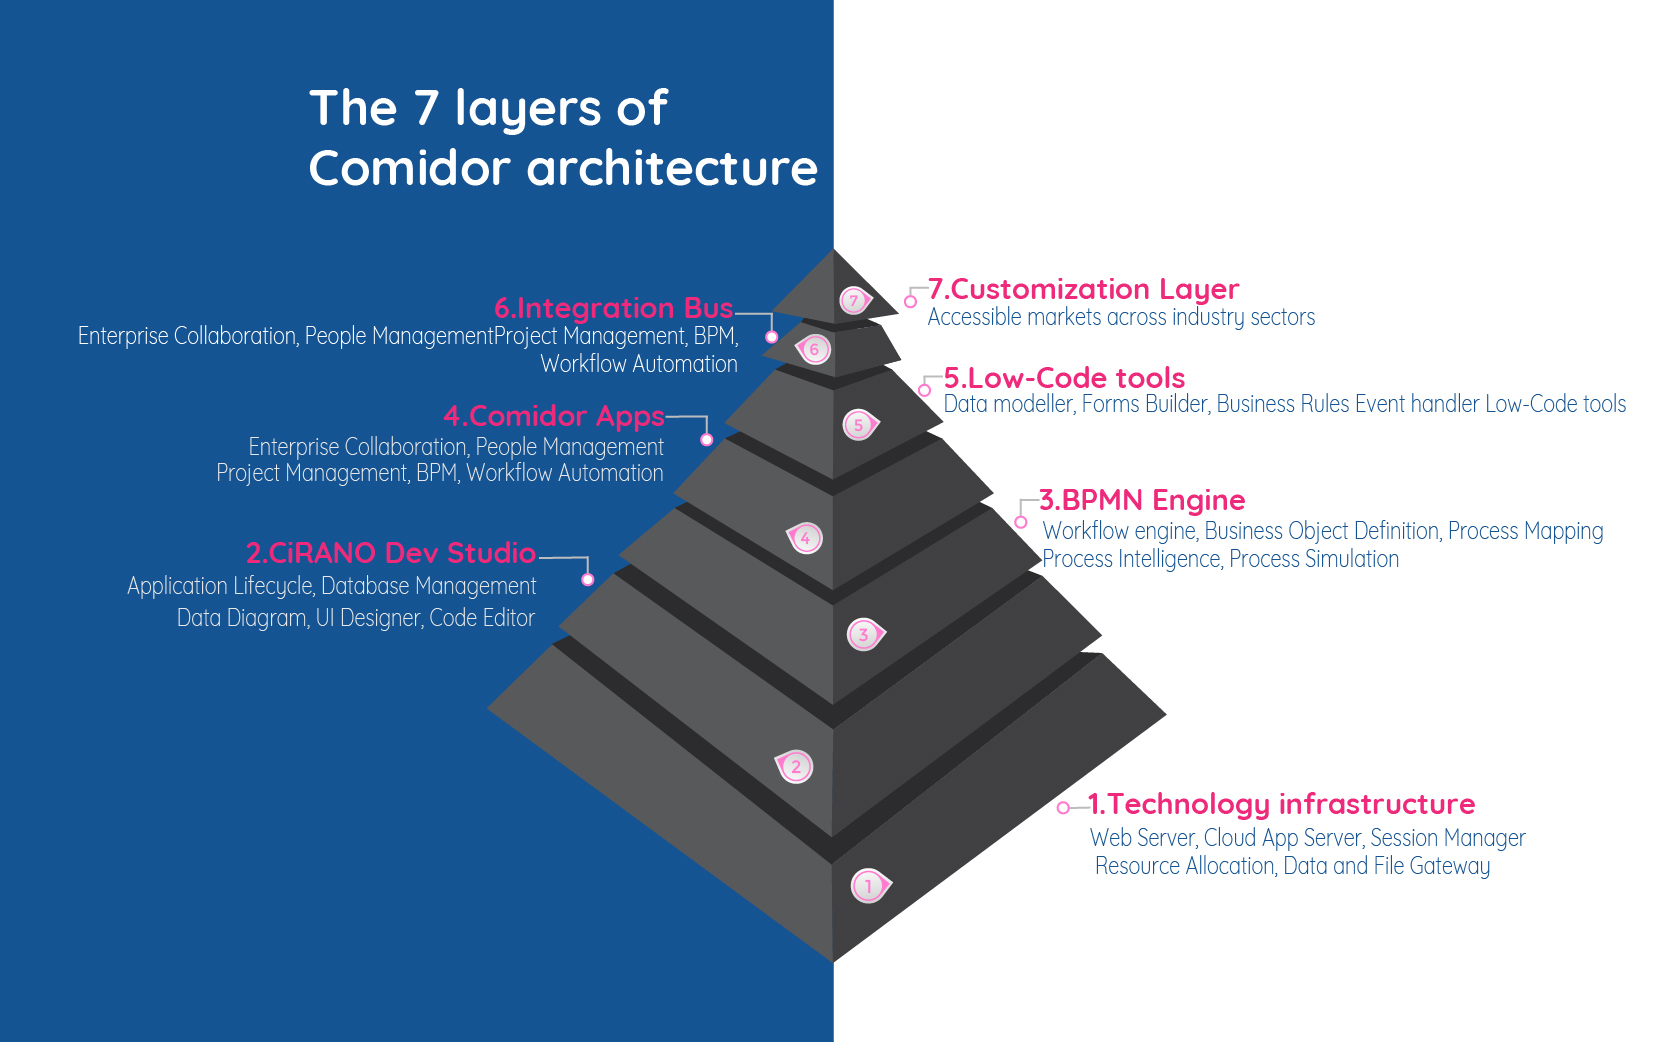 The 7 layers of Comidor architecture